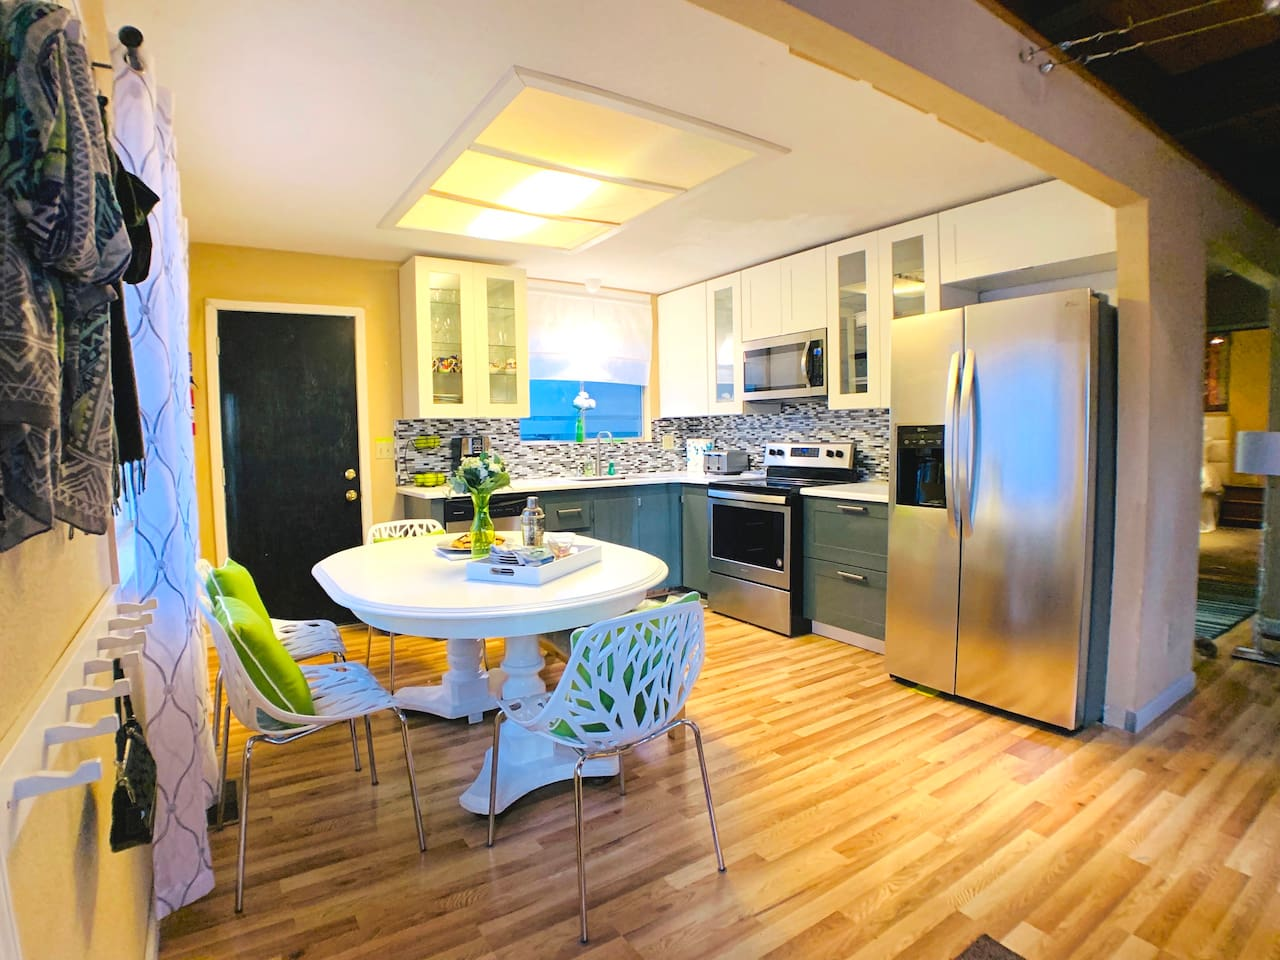 Fully remodeled kitchen is equipped with stainless steel appliances. Refrigerator, stove/oven, coffee maker, microwave, dishwasher, toaster, waffle maker and crock pot, plus all the pots and pans you need to create a delicious family meal at home.